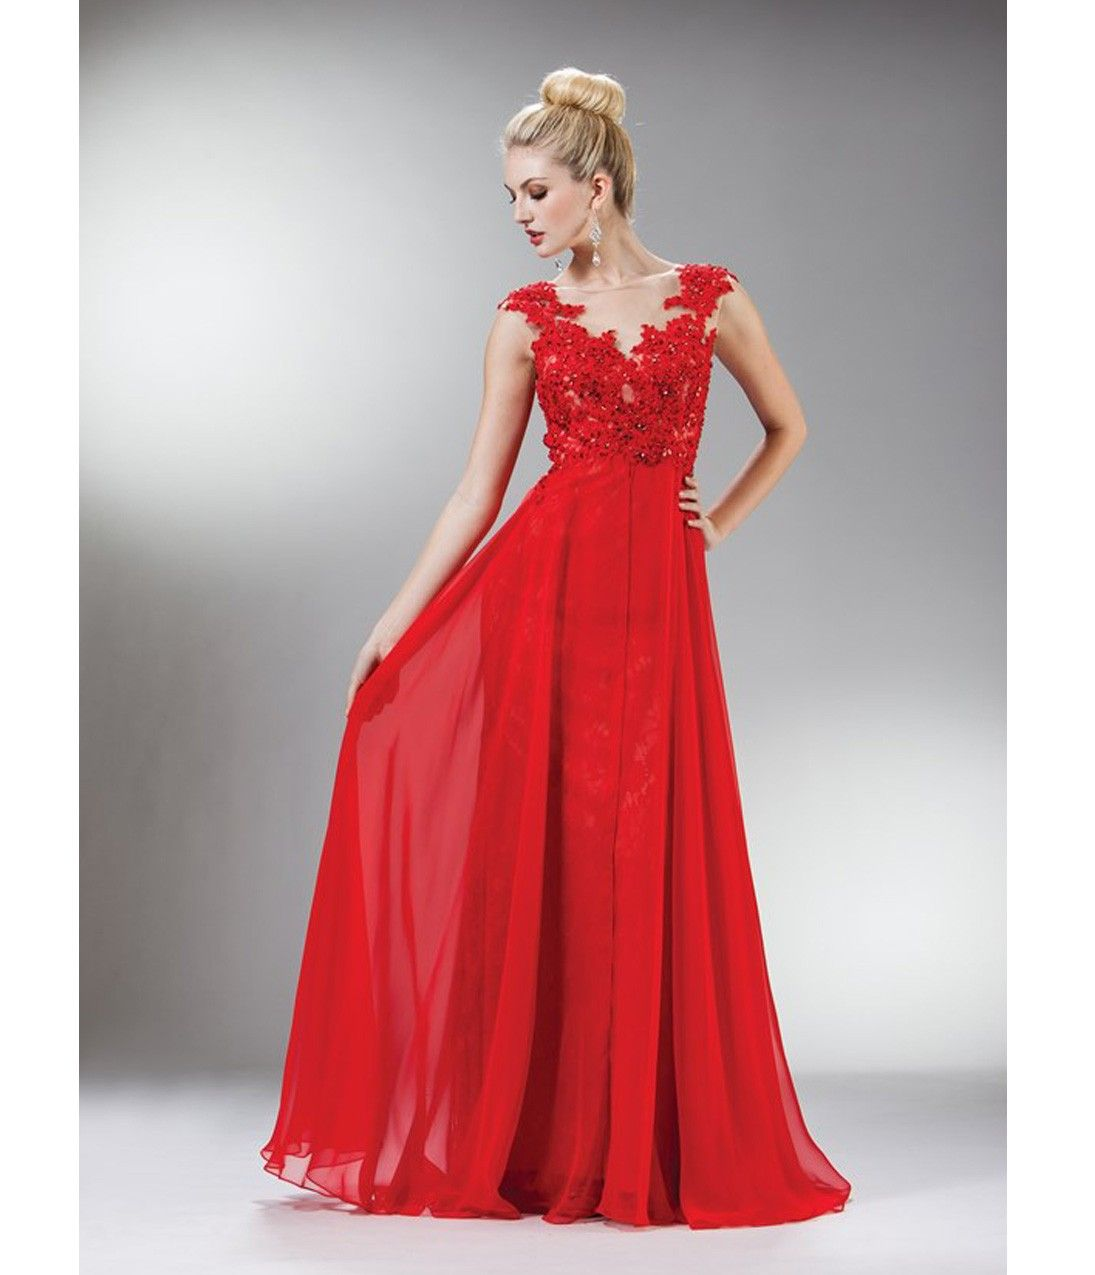 150 Red Beaded Lace Mesh Cap Sleeve Long Dress for Prom 2017 ...